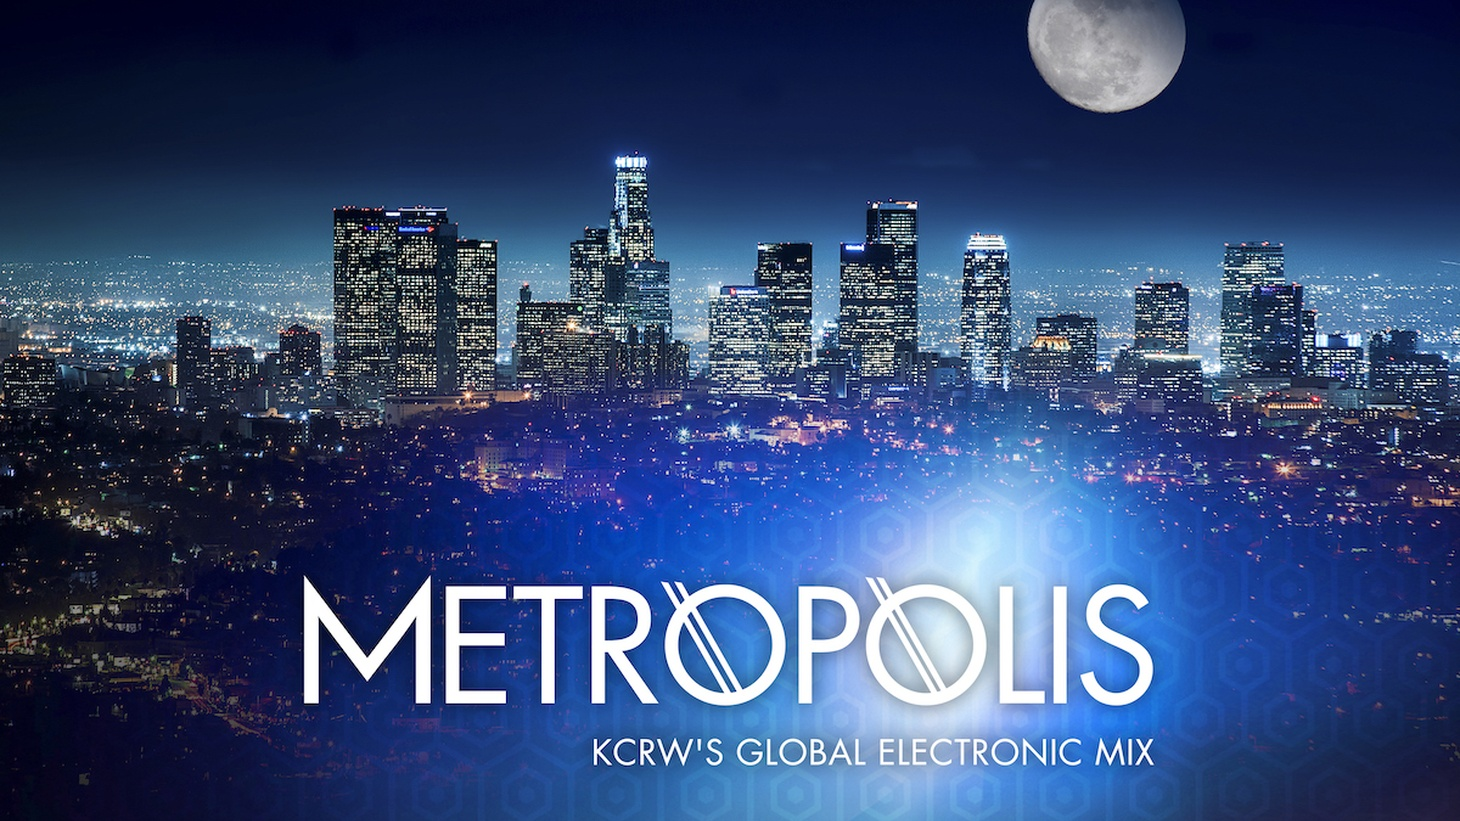 Metropolis takes off this week with a couple of slinky Disco groovers, flashes of Motown with Marvin Gaye and Diana Ross samples to follow, giving way to a brilliant new Rhye remix, and pivoting to the dark intensity of Willaris K.